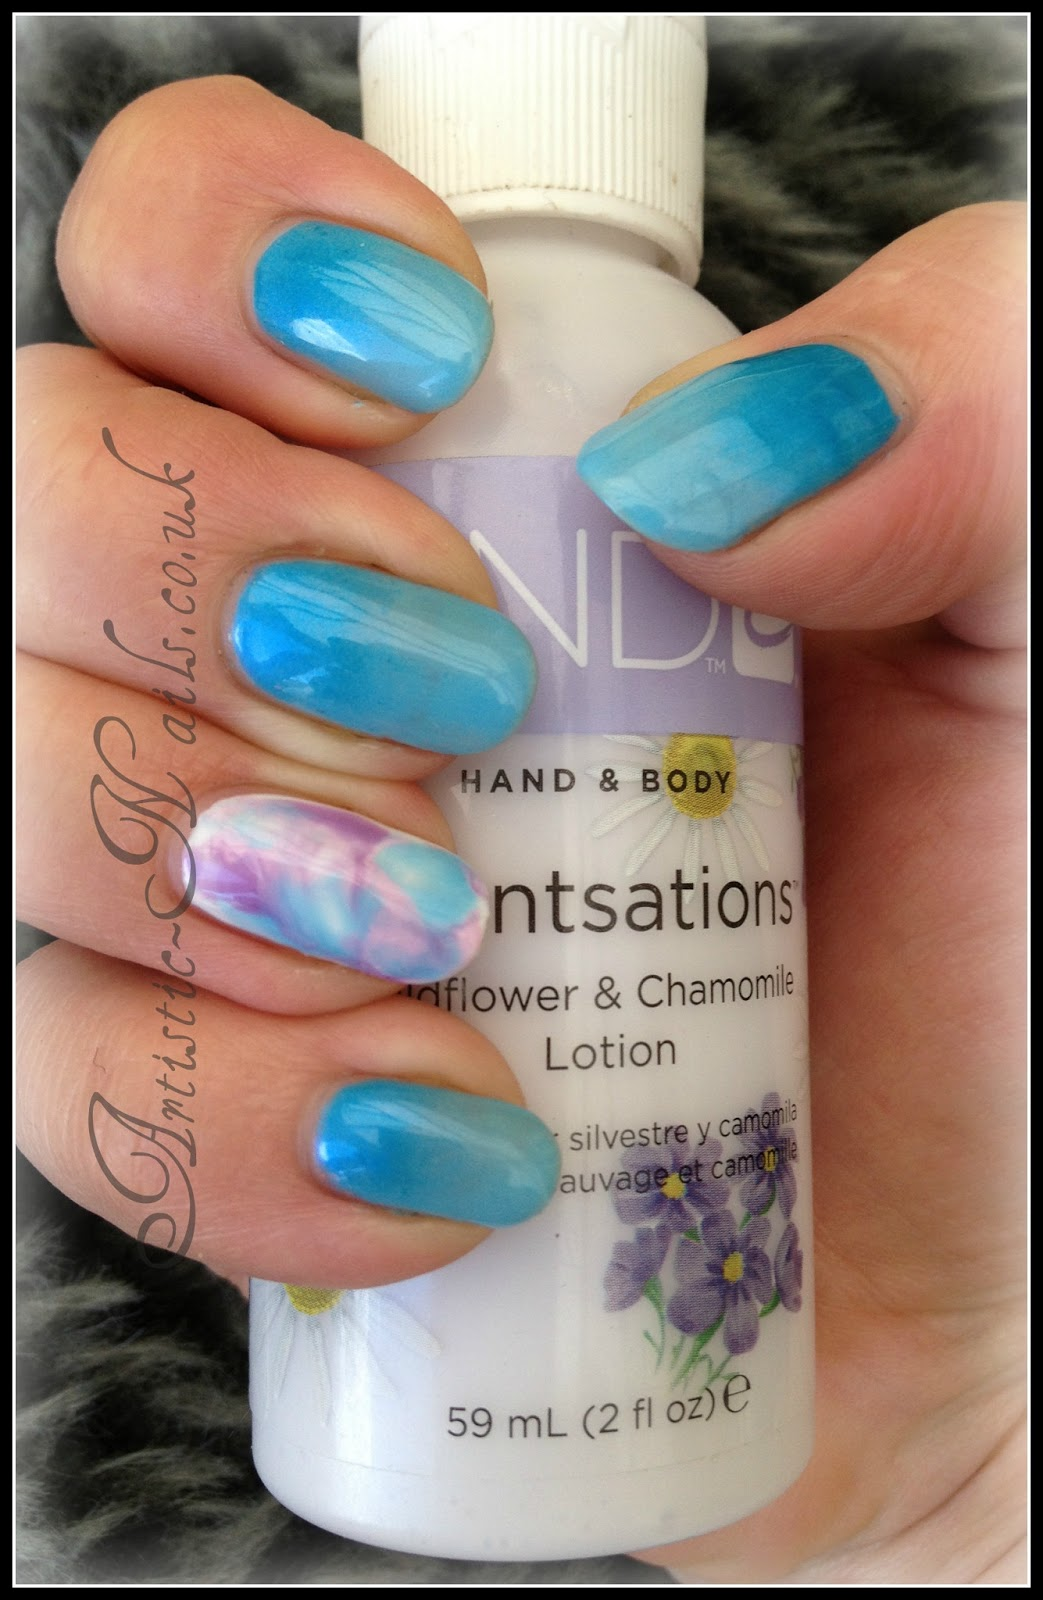 Artistic Nails Poole Uk Nail Art With Additives